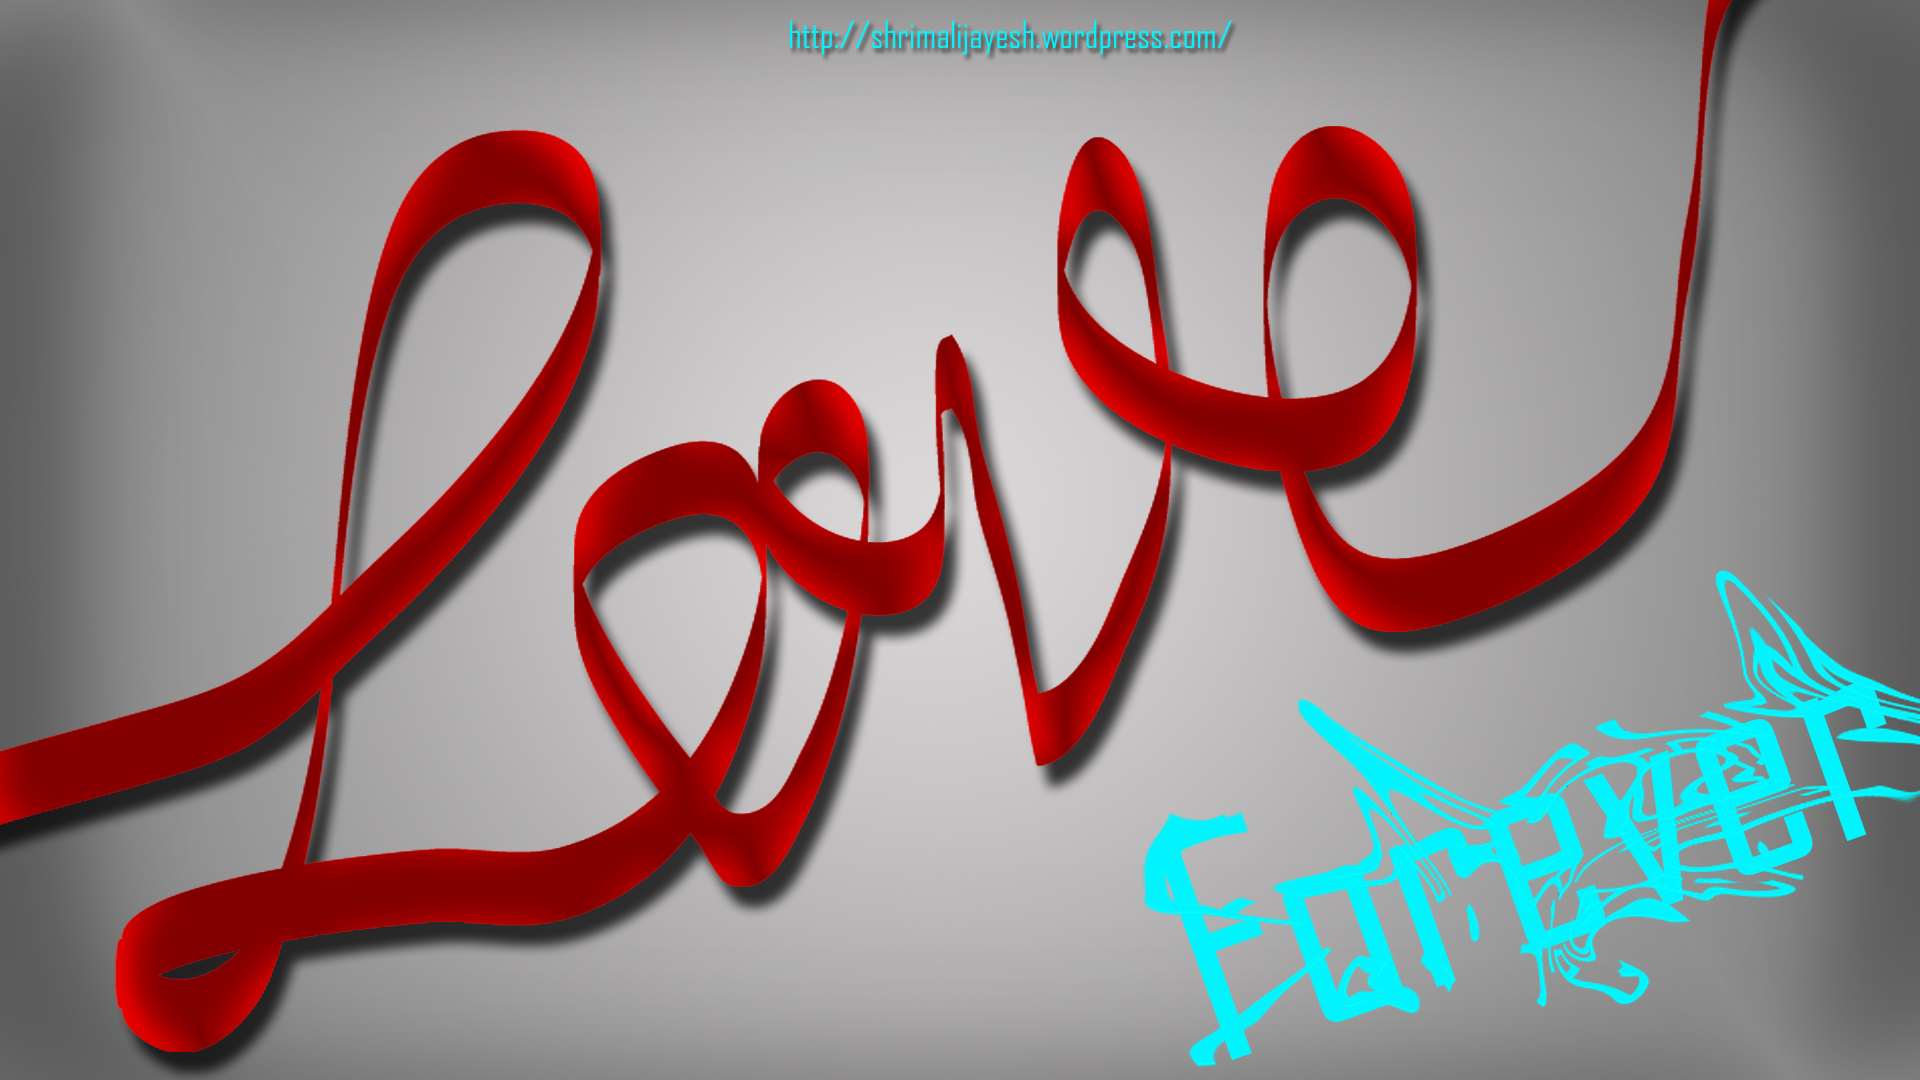 Love Wallpaper P Name : Wallpaper JAYESH SHRIMALI